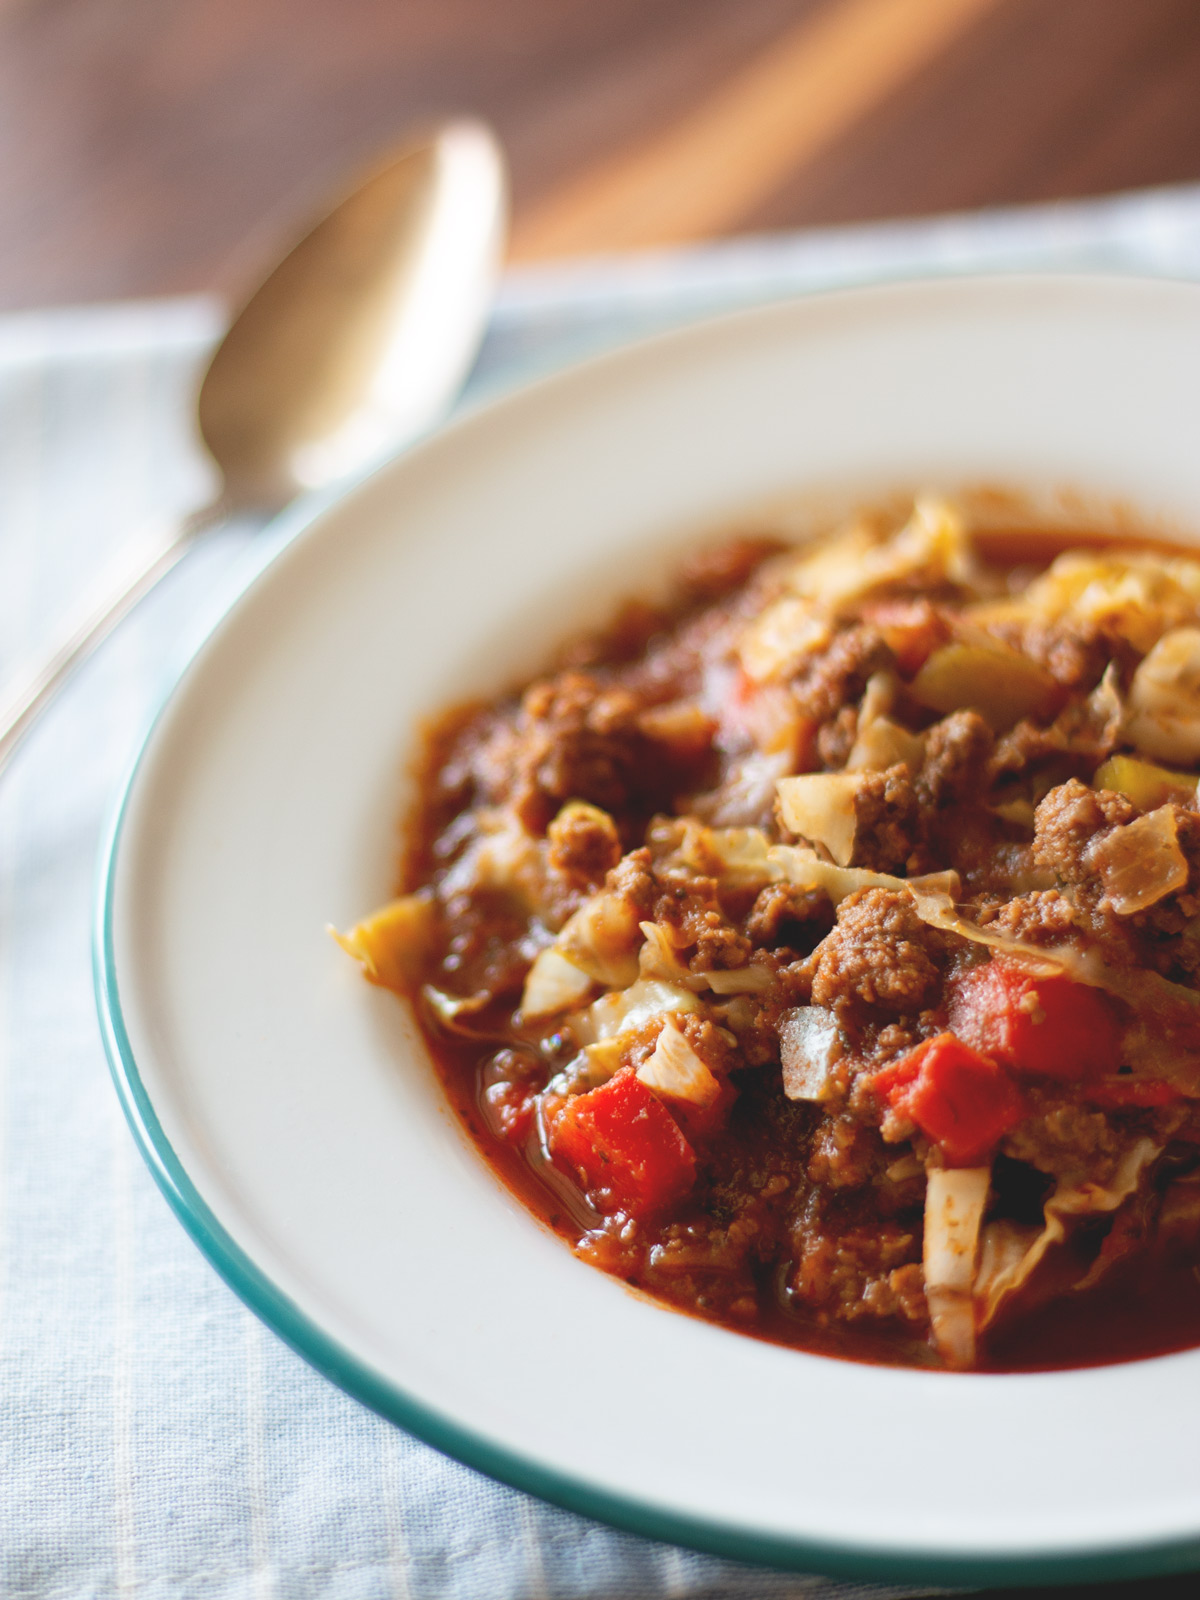 Easy Cabbage Roll Soup - All of the flavor of cabbage rolls, but no leaf folding needed! Recipe from Wholesome Skillet